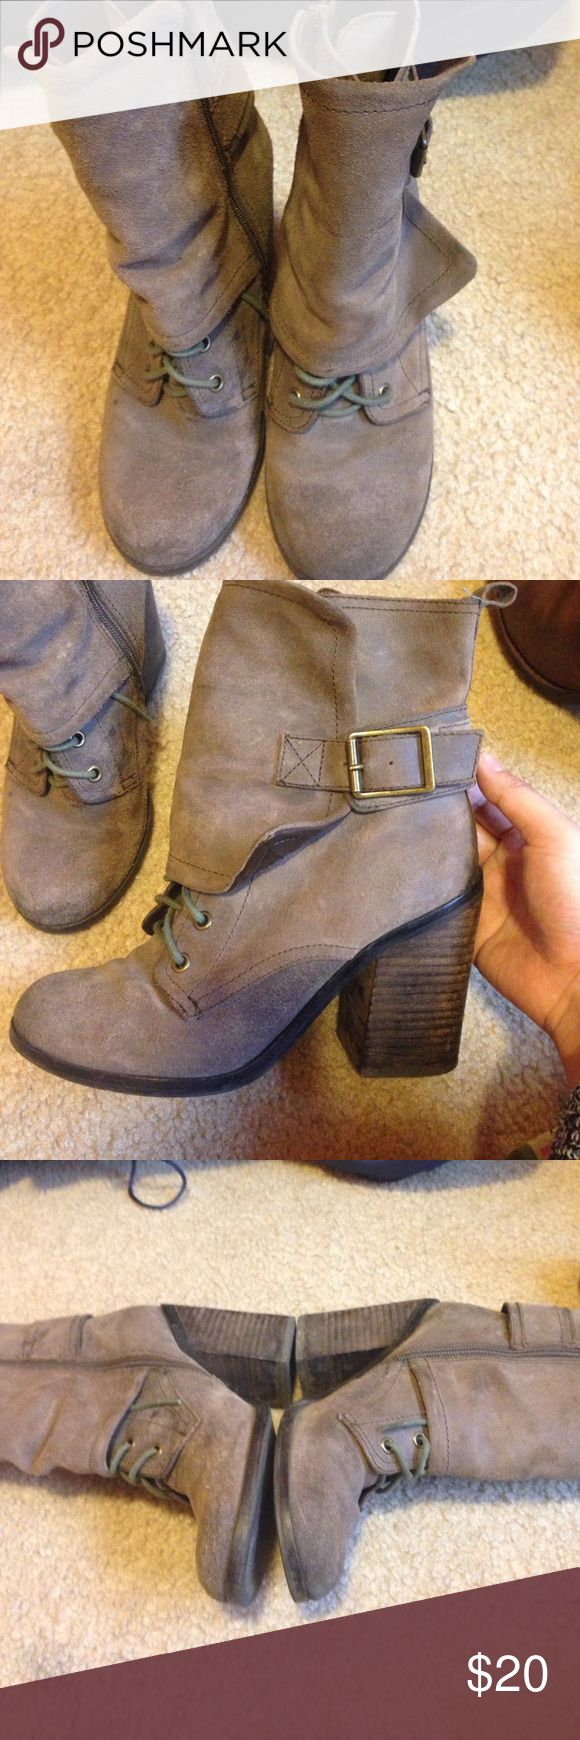 Fergie boots size 8 Brown Fergie boots size 8 comfortable heel Fergie Shoes Heeled Boots